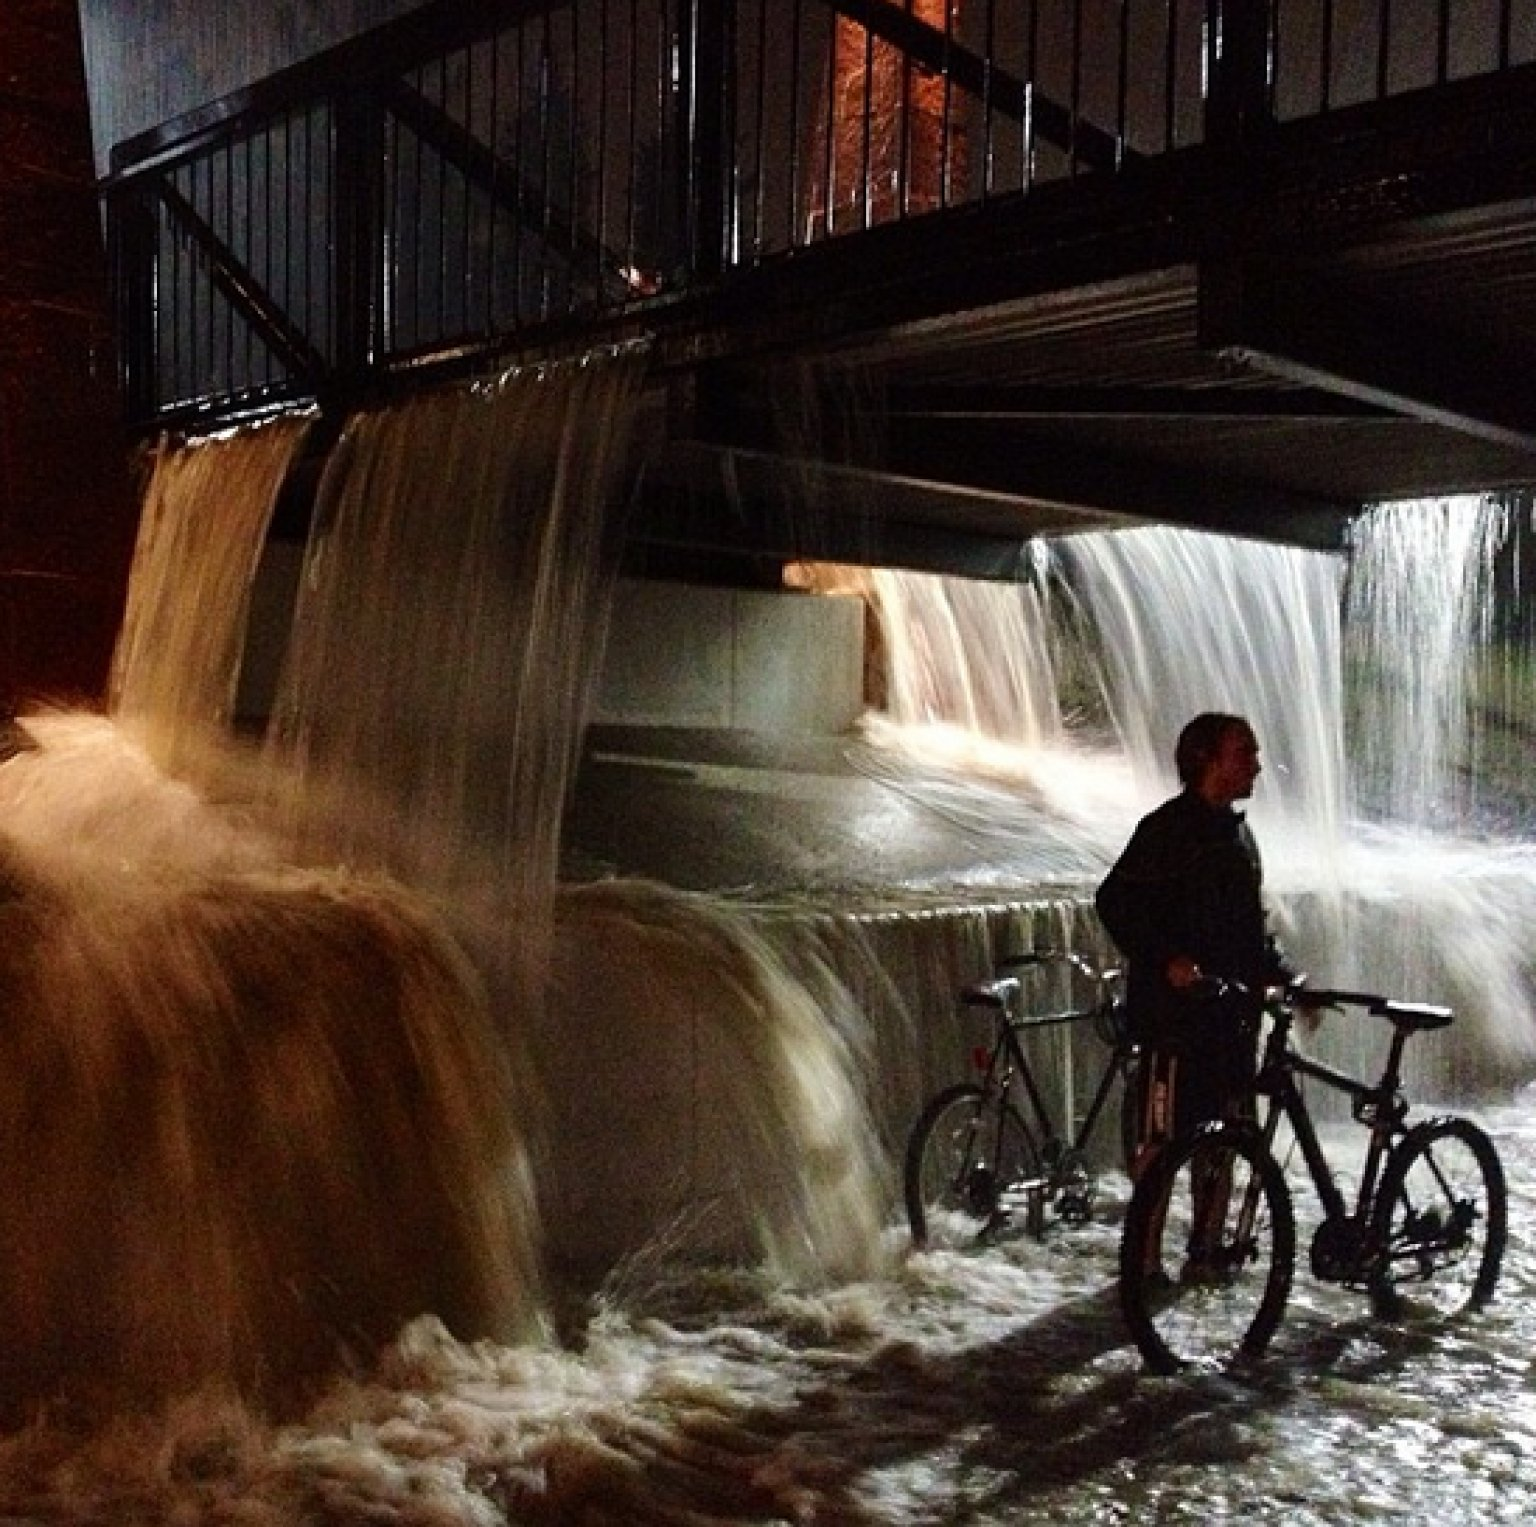 Denver Colorado News Weather Sports And More: Colorado Flash Flood: Heavy Rains In Boulder Claim At